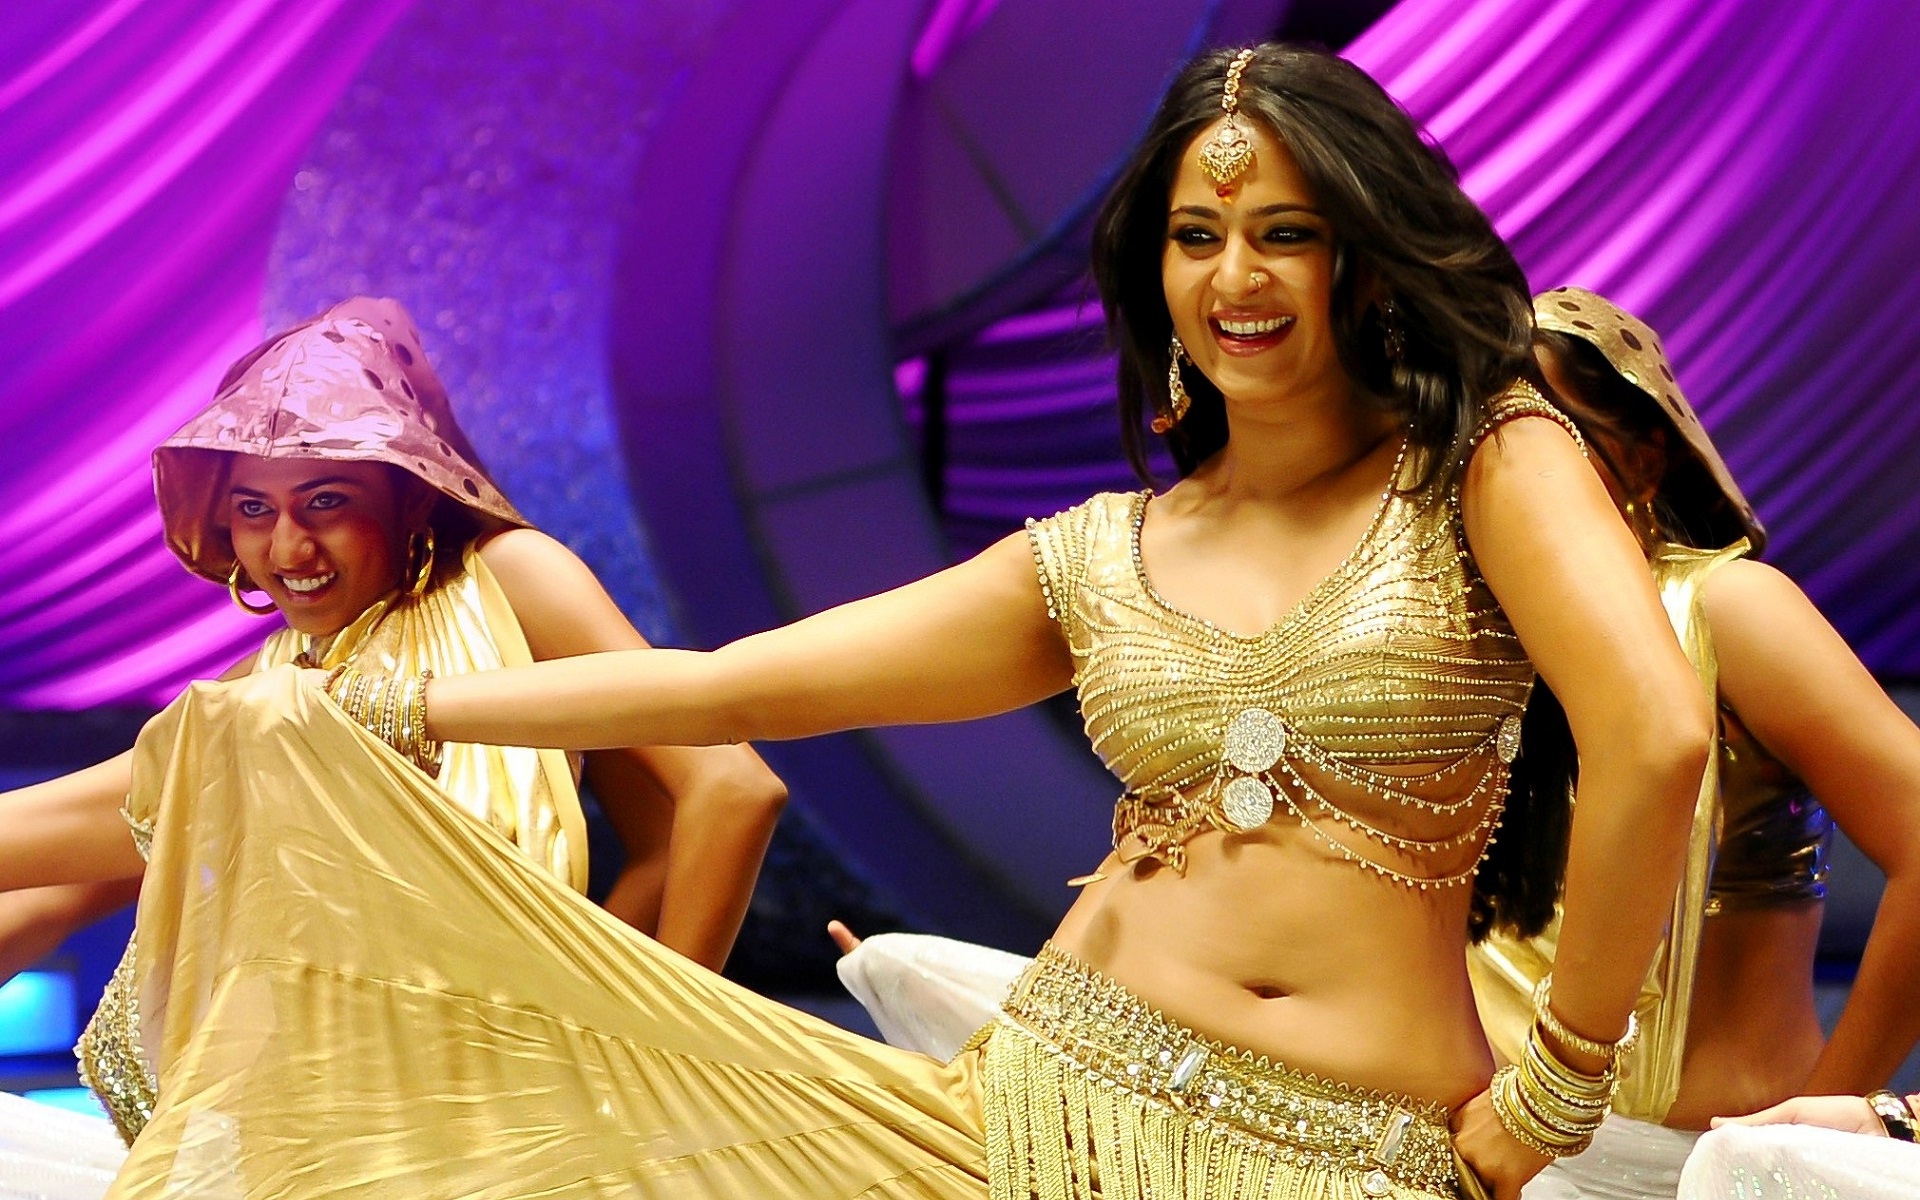 Anushka Shetty Cute Wallpapers Anushka Photos 30 Hd Wallpaper Collections